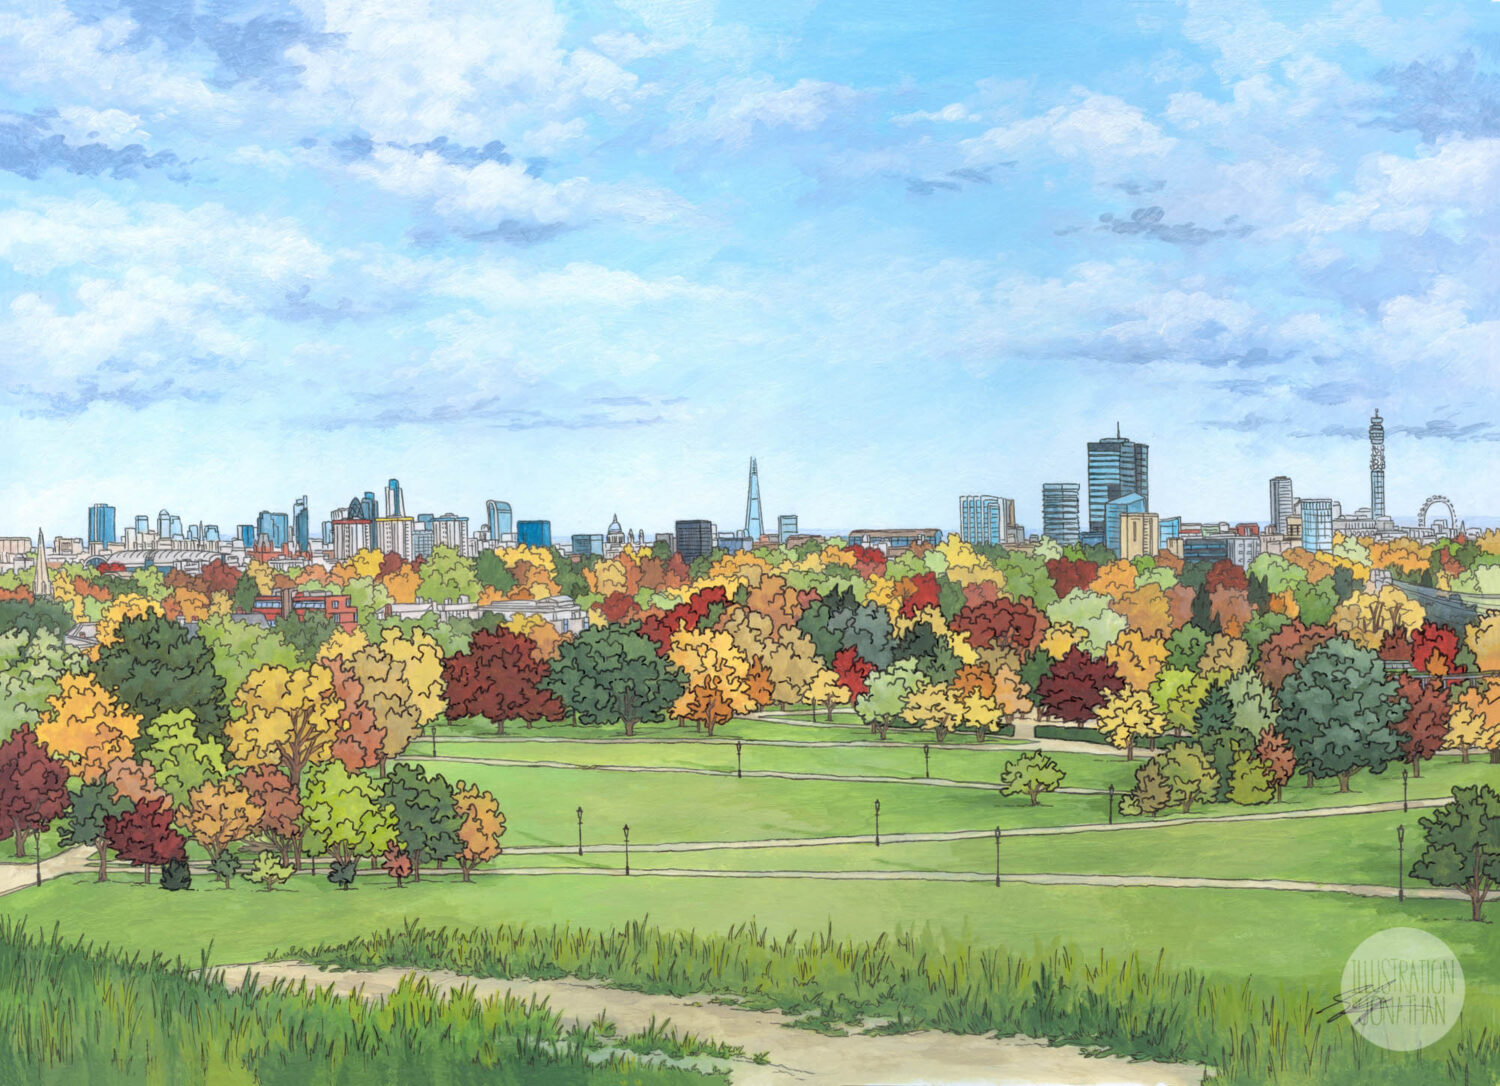 Primrose Hilll in Autumn - Illustration by Jonathan Chapman